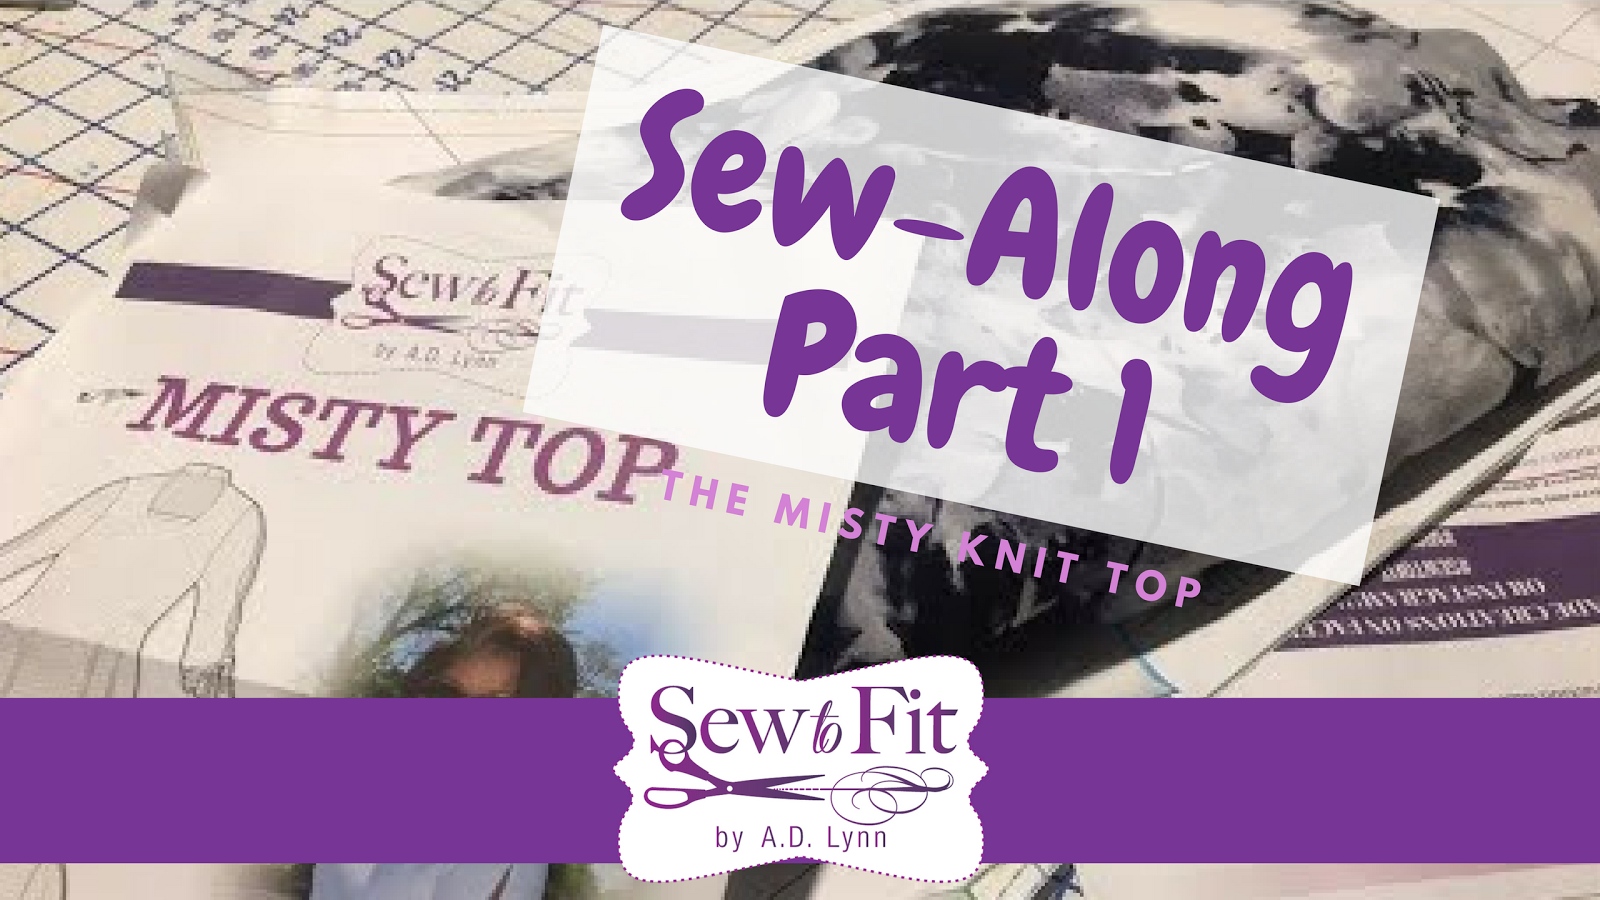 Misty Knit Top SEW-ALONG